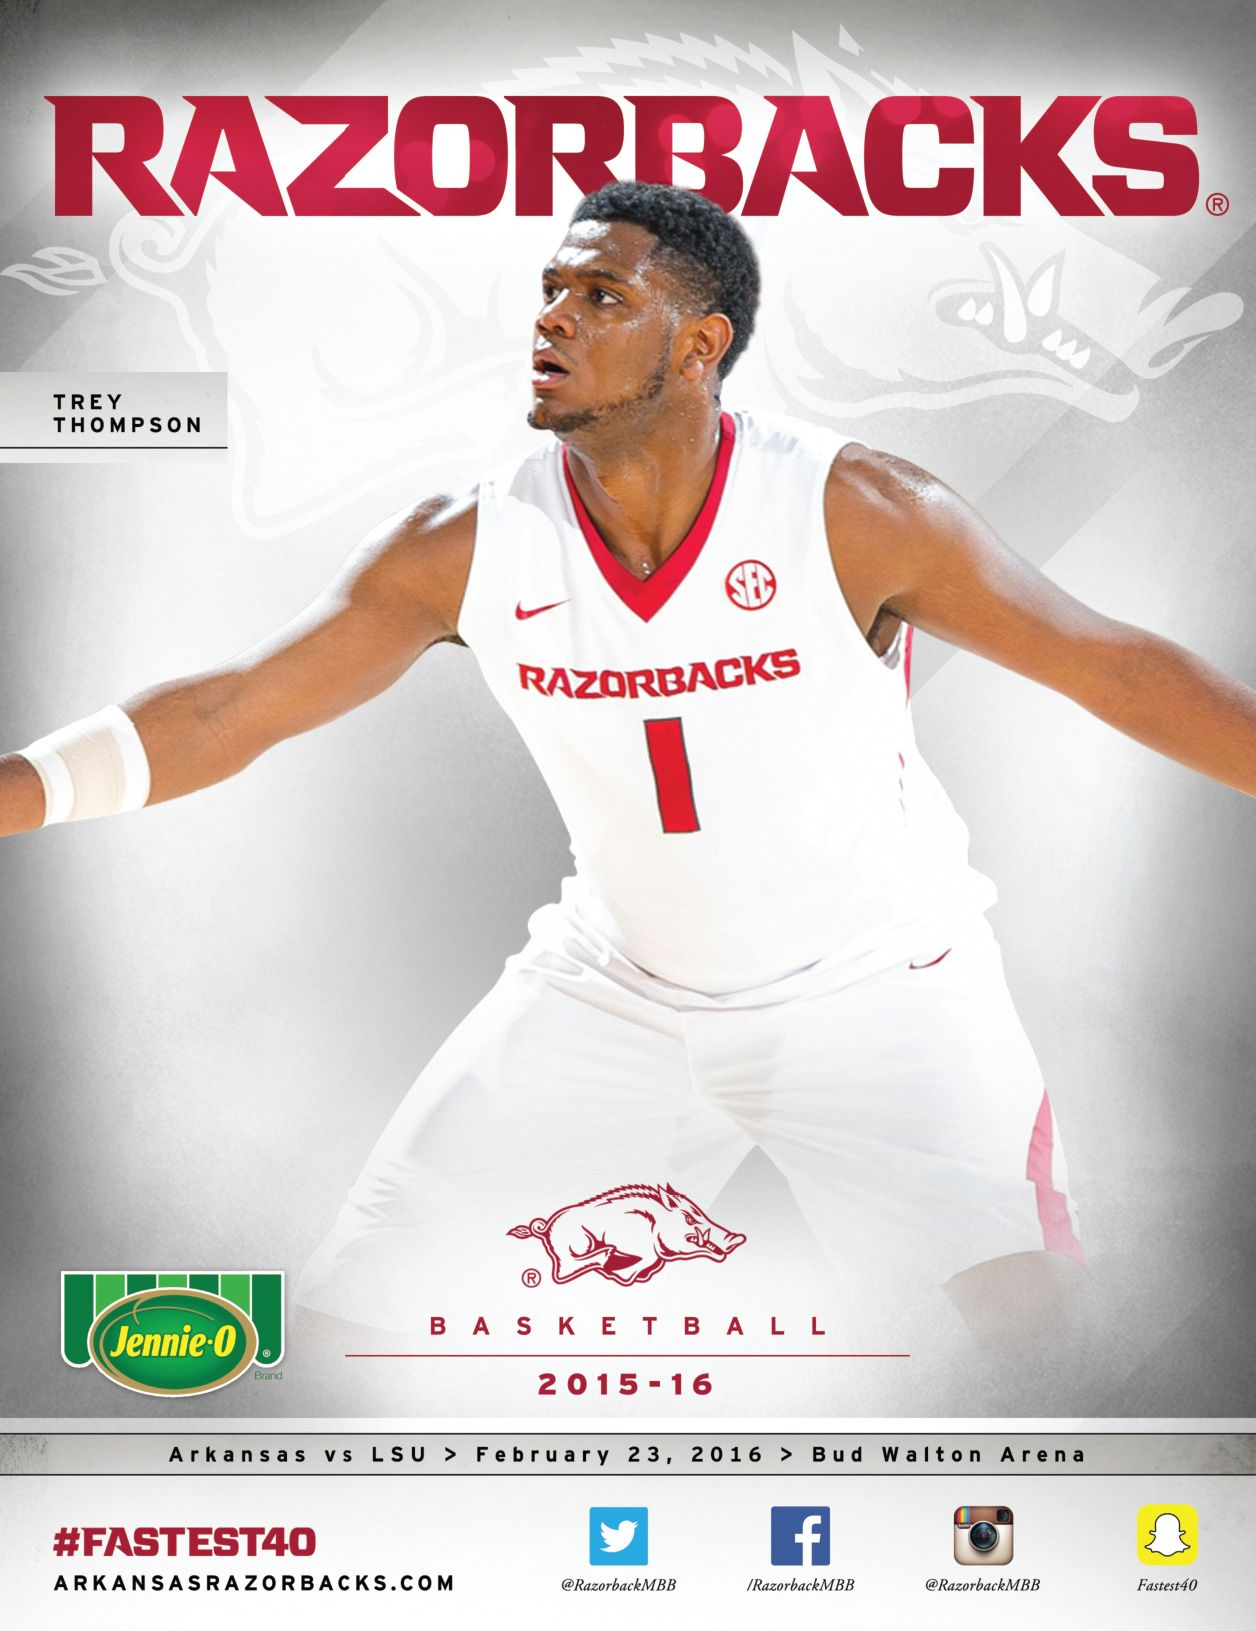 The official 201516 Arkansas Razorbacks Men's Basketball